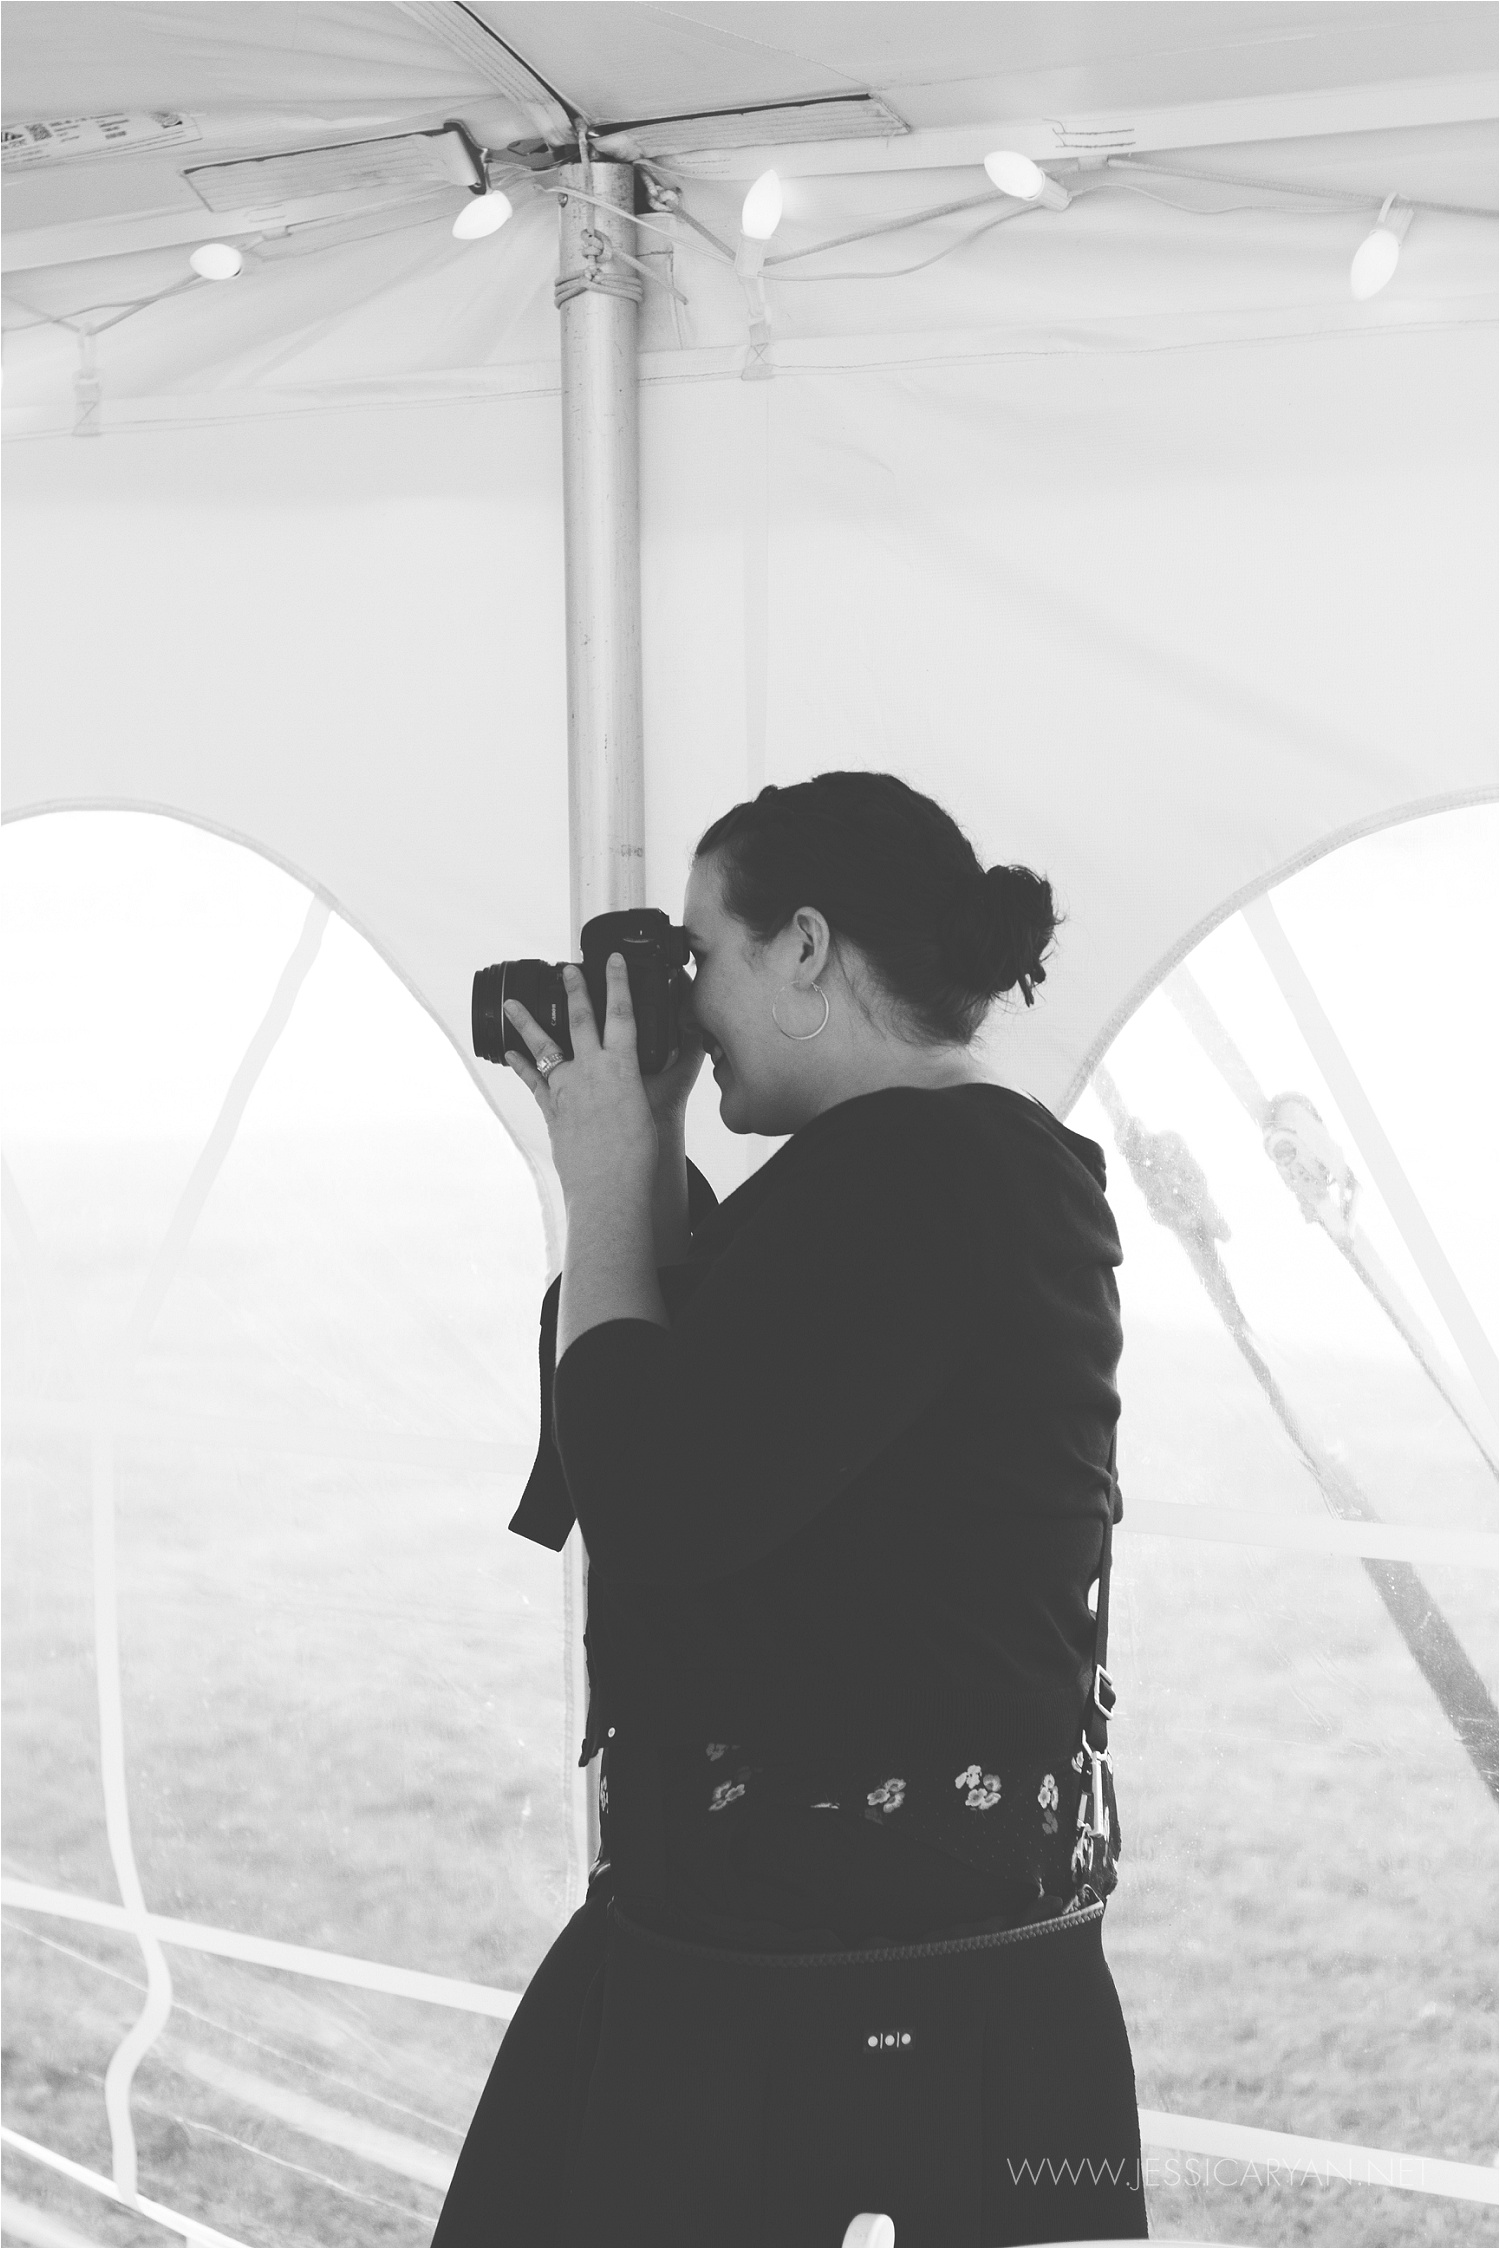 OK, OK, I'll end with one more of me! I love what I do so much - I'm always smiling behind my camera :)